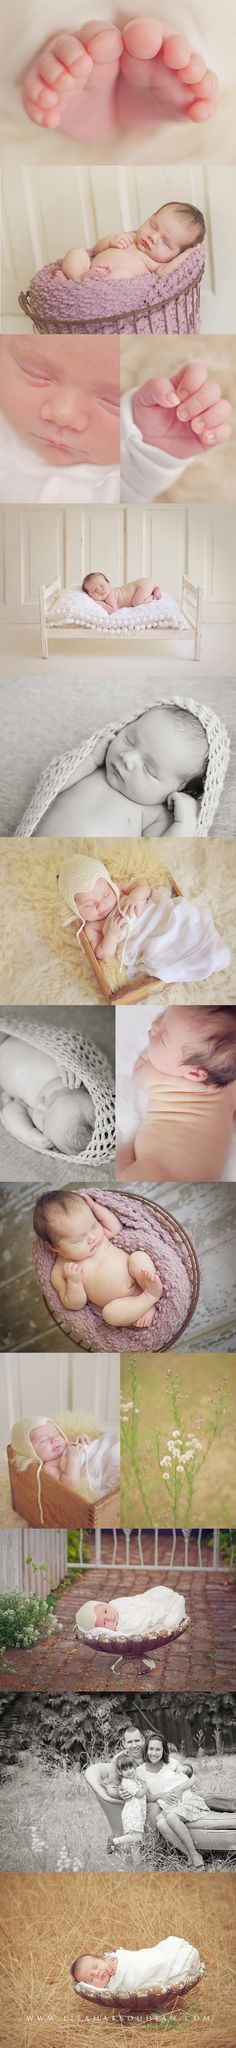 Newborn session.  Love!